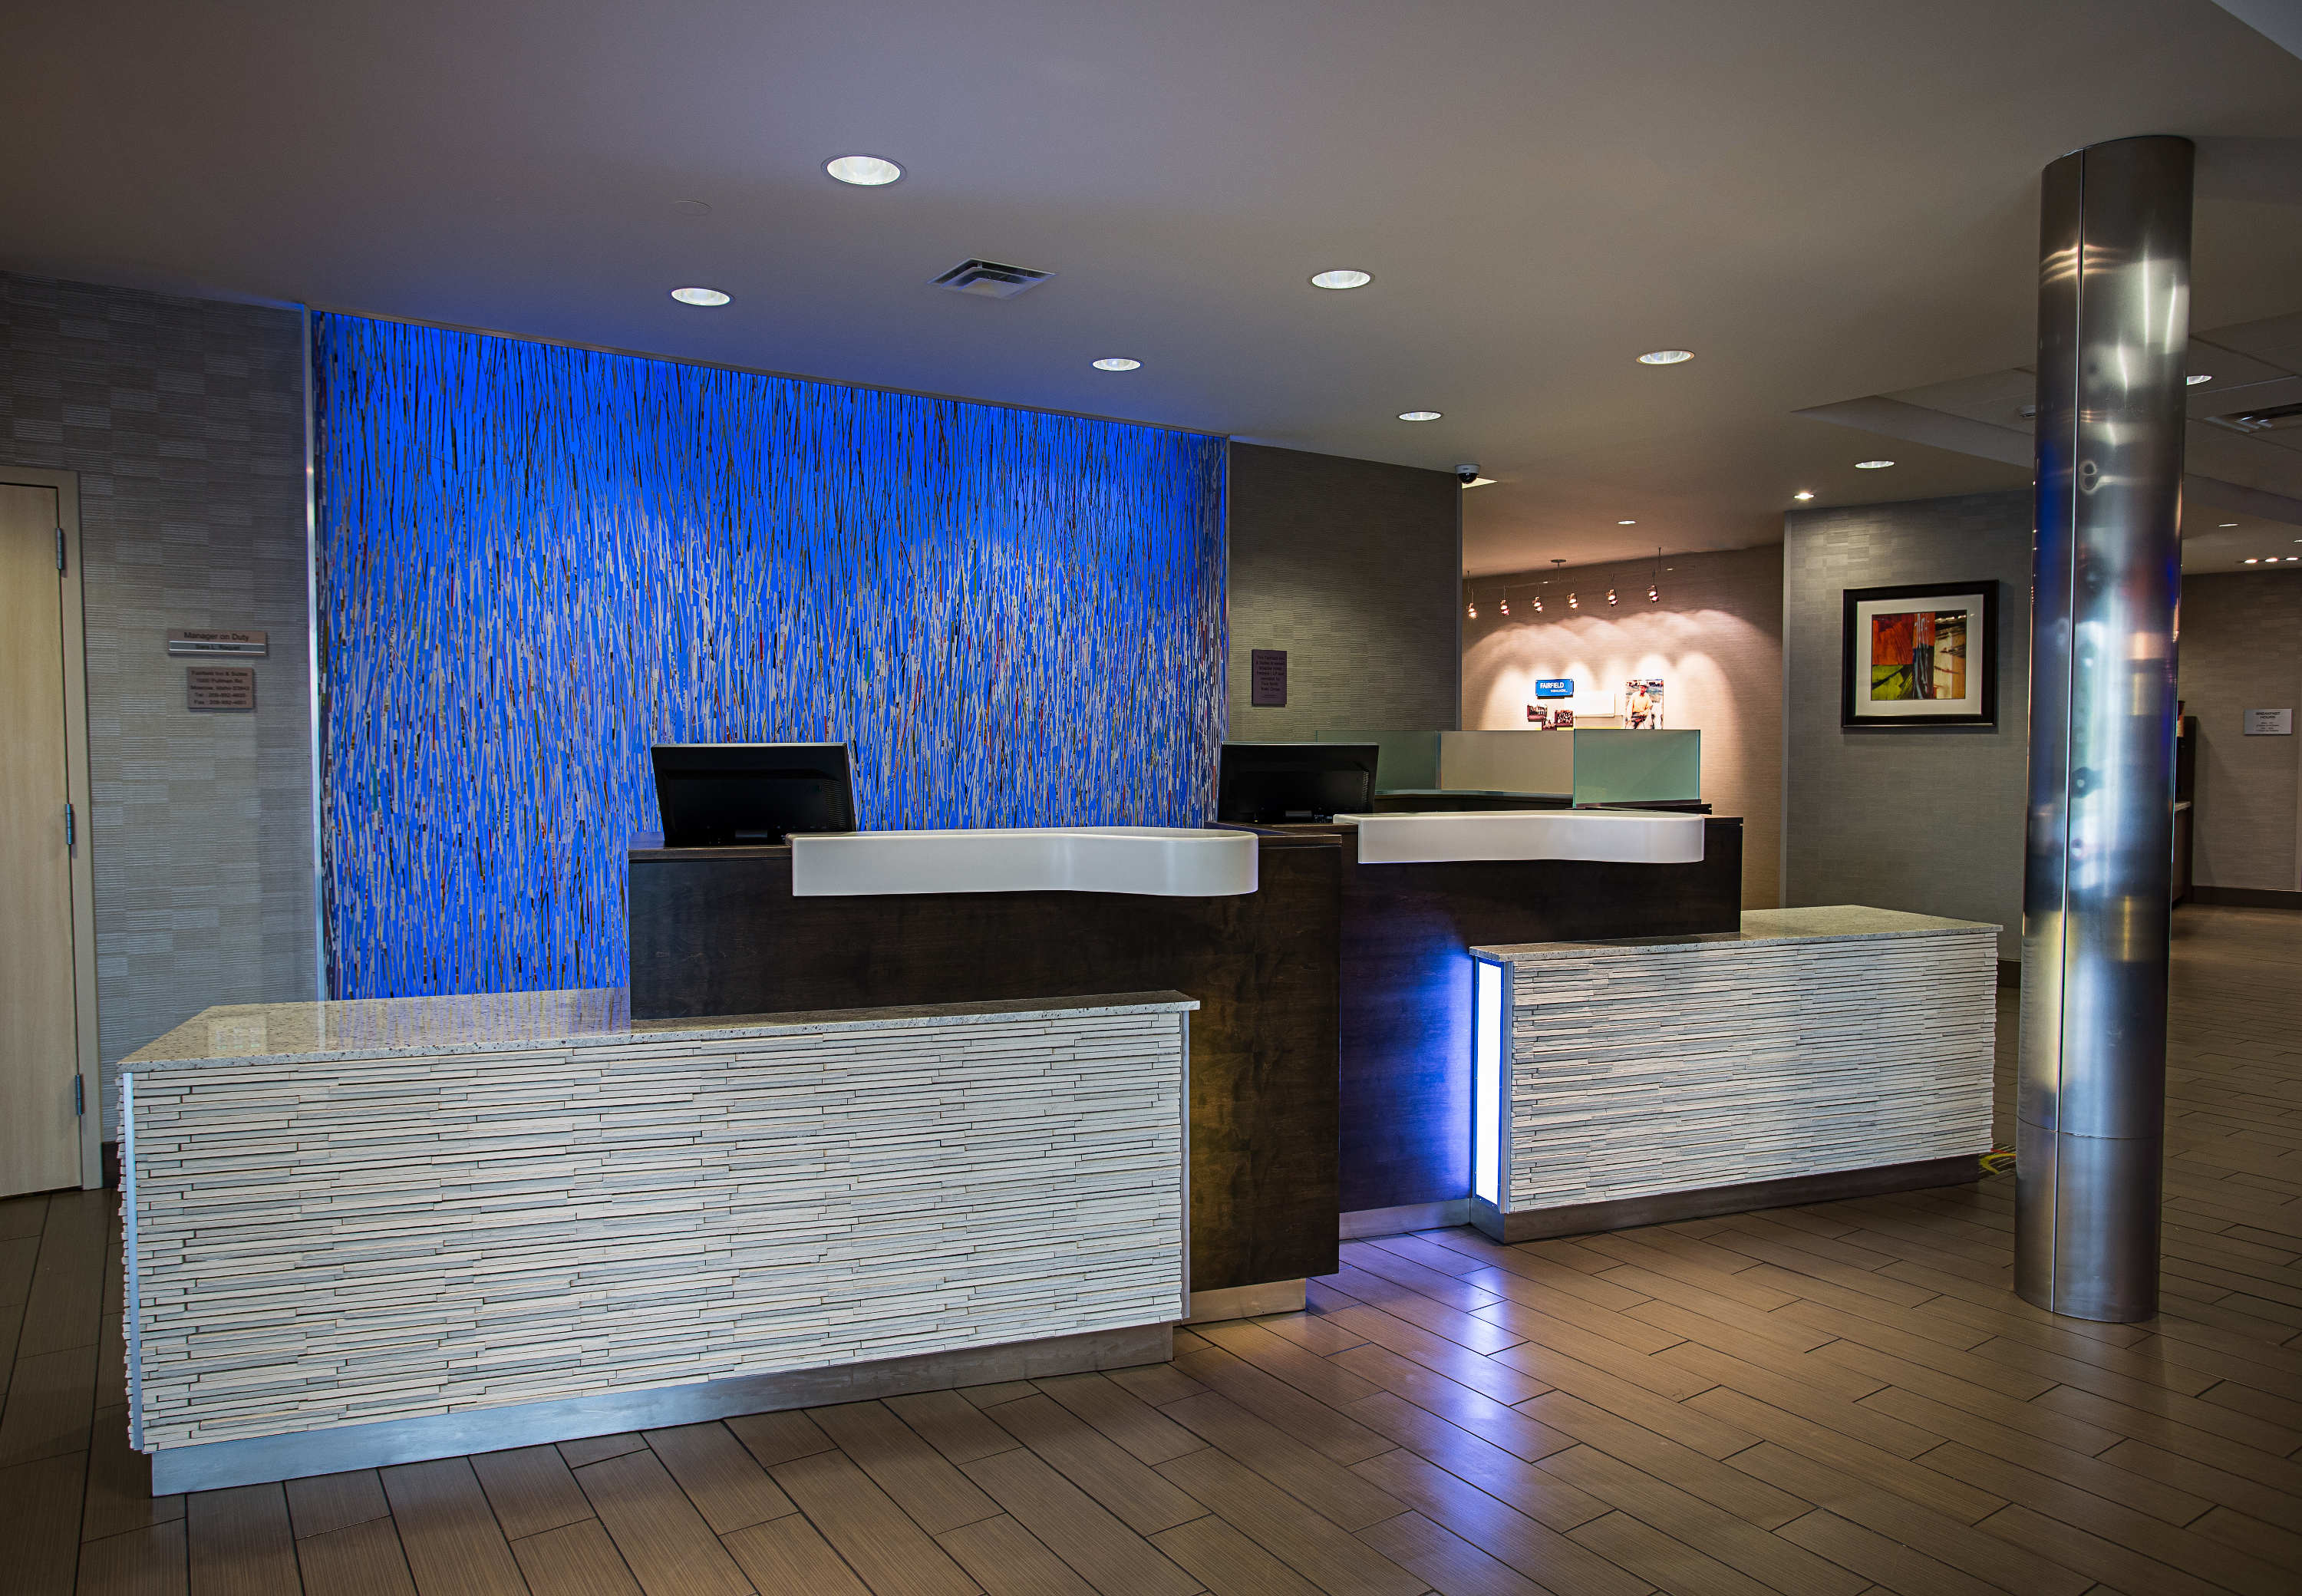 Fairfield Inn & Suites by Marriott Moscow image 13